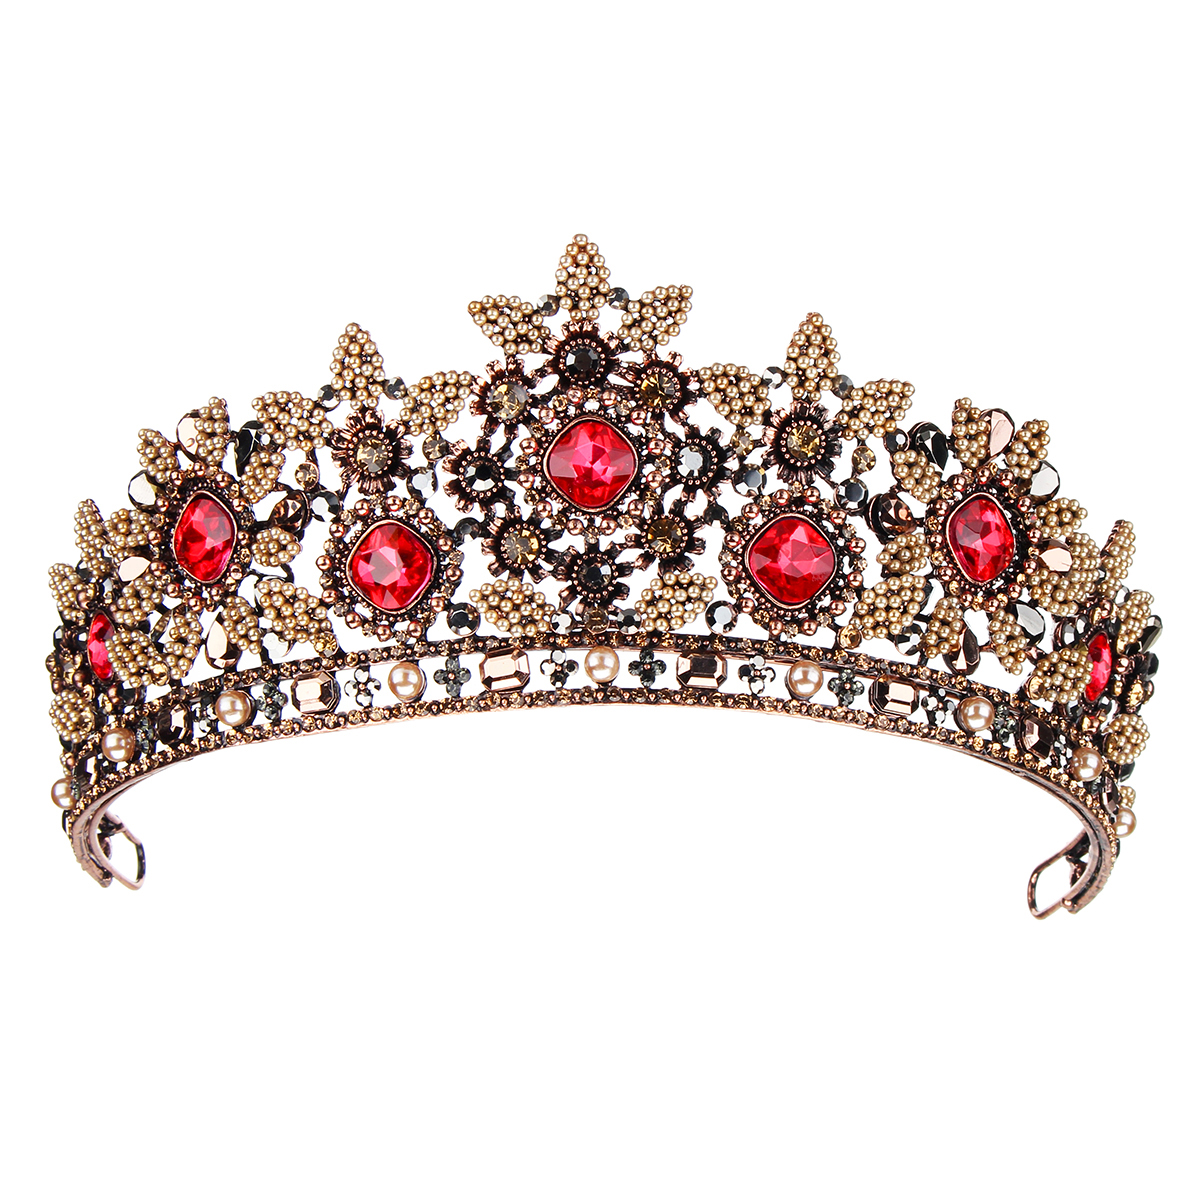 Retro Red Rhinestones Hairband Vintage Baroque Tiaras Wedding Hair Accessories Bridal Crown